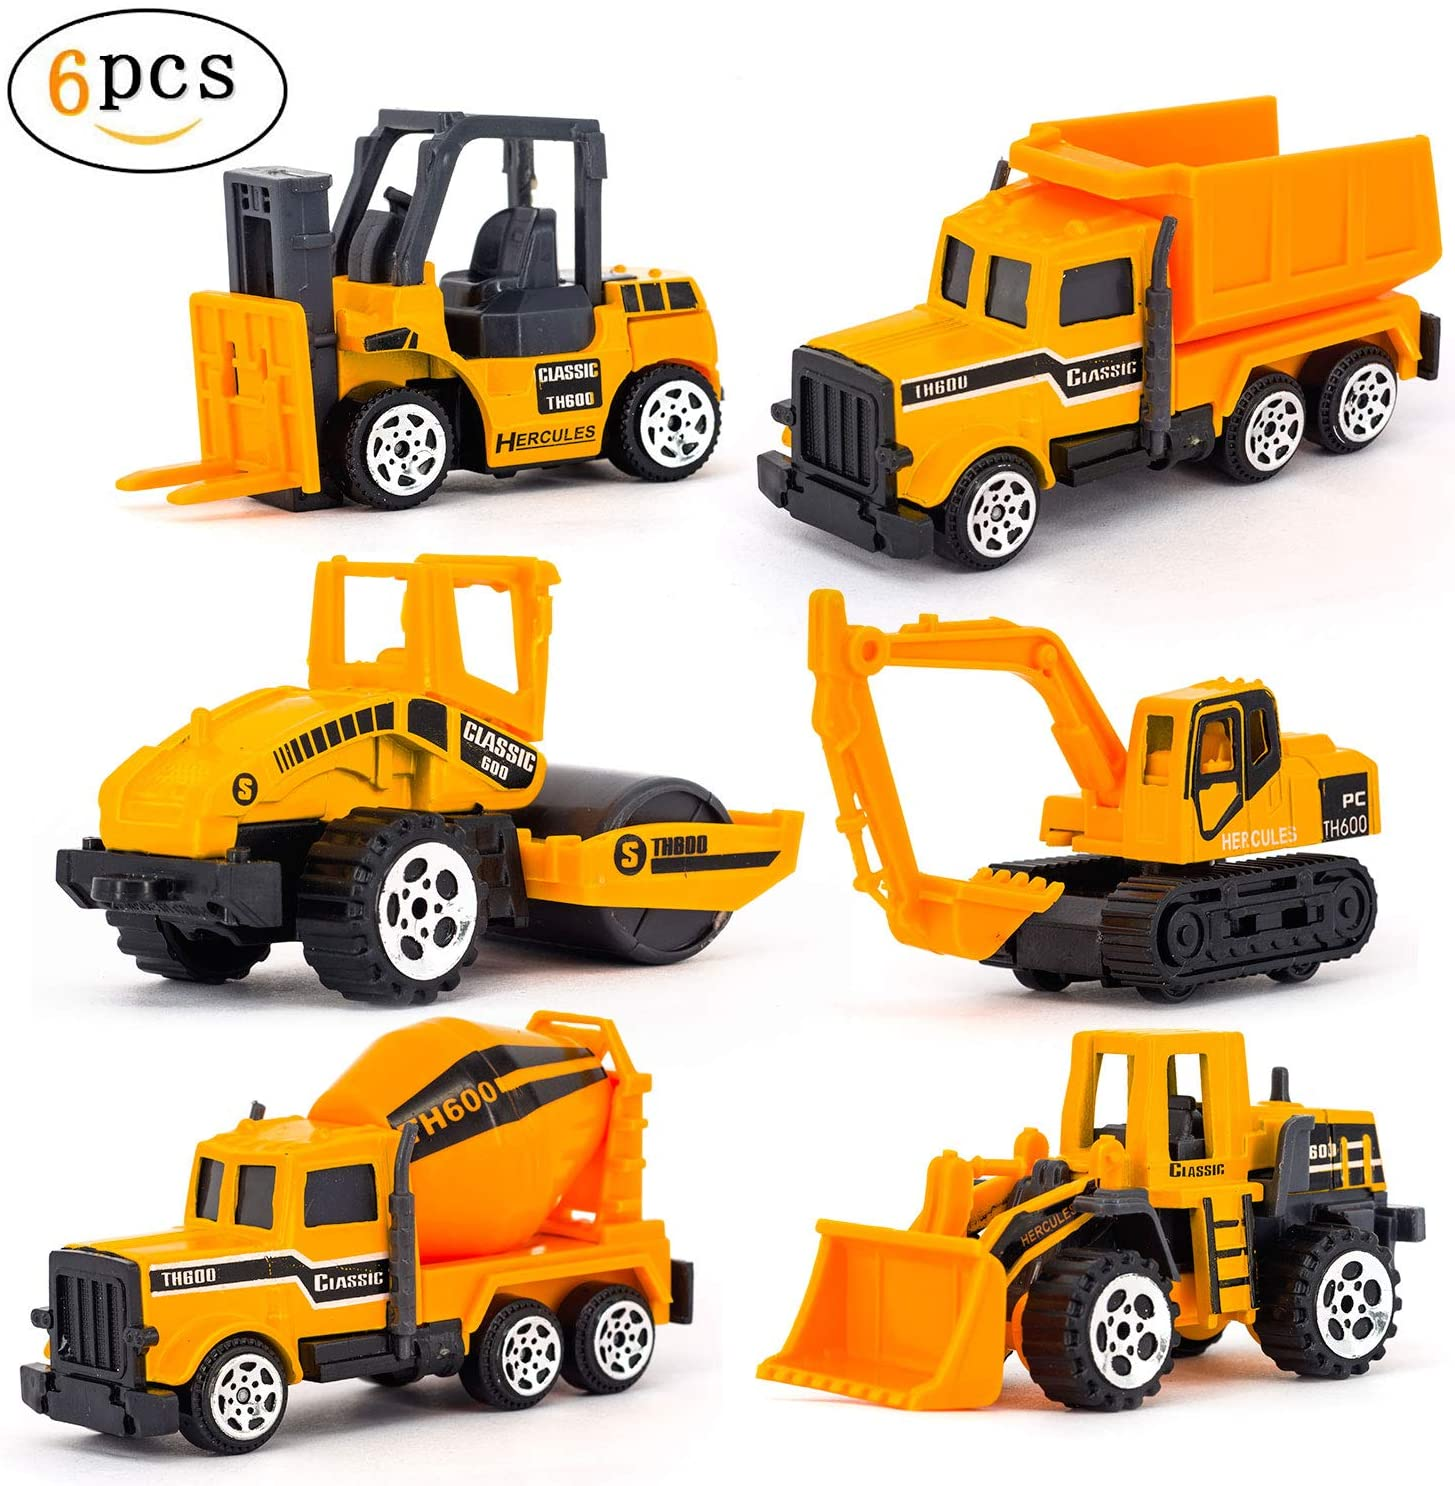 Lynkaye Construction Toys Sets 6 Pieces Mini Die-cast Engineering Vehicles for Kids,Included Dumper, Bulldozers, Forklift, Tank Truck, Asphalt Car and Excavator (Construction Truck 6 in 1)